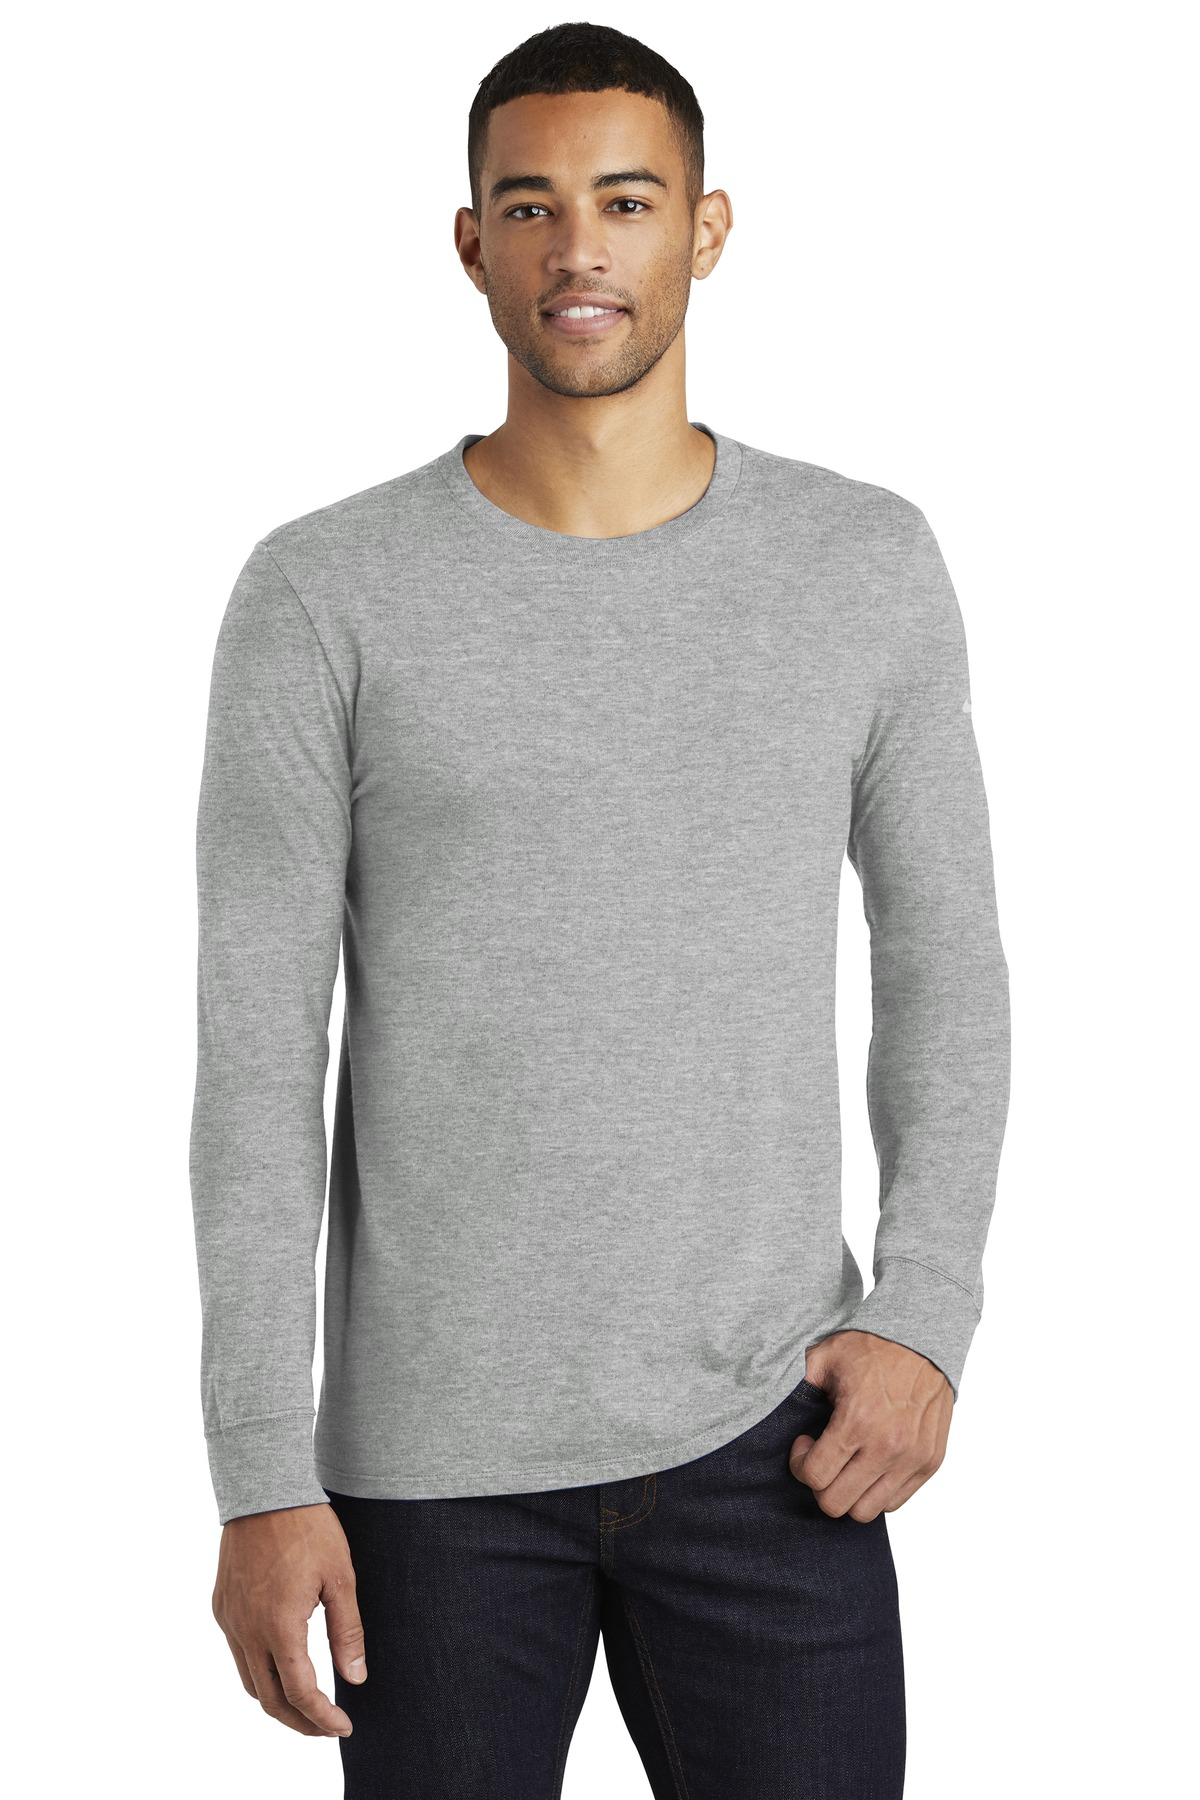 Nike Core Cotton Long Sleeve Tee. NKBQ5232 - Dark Grey Heather